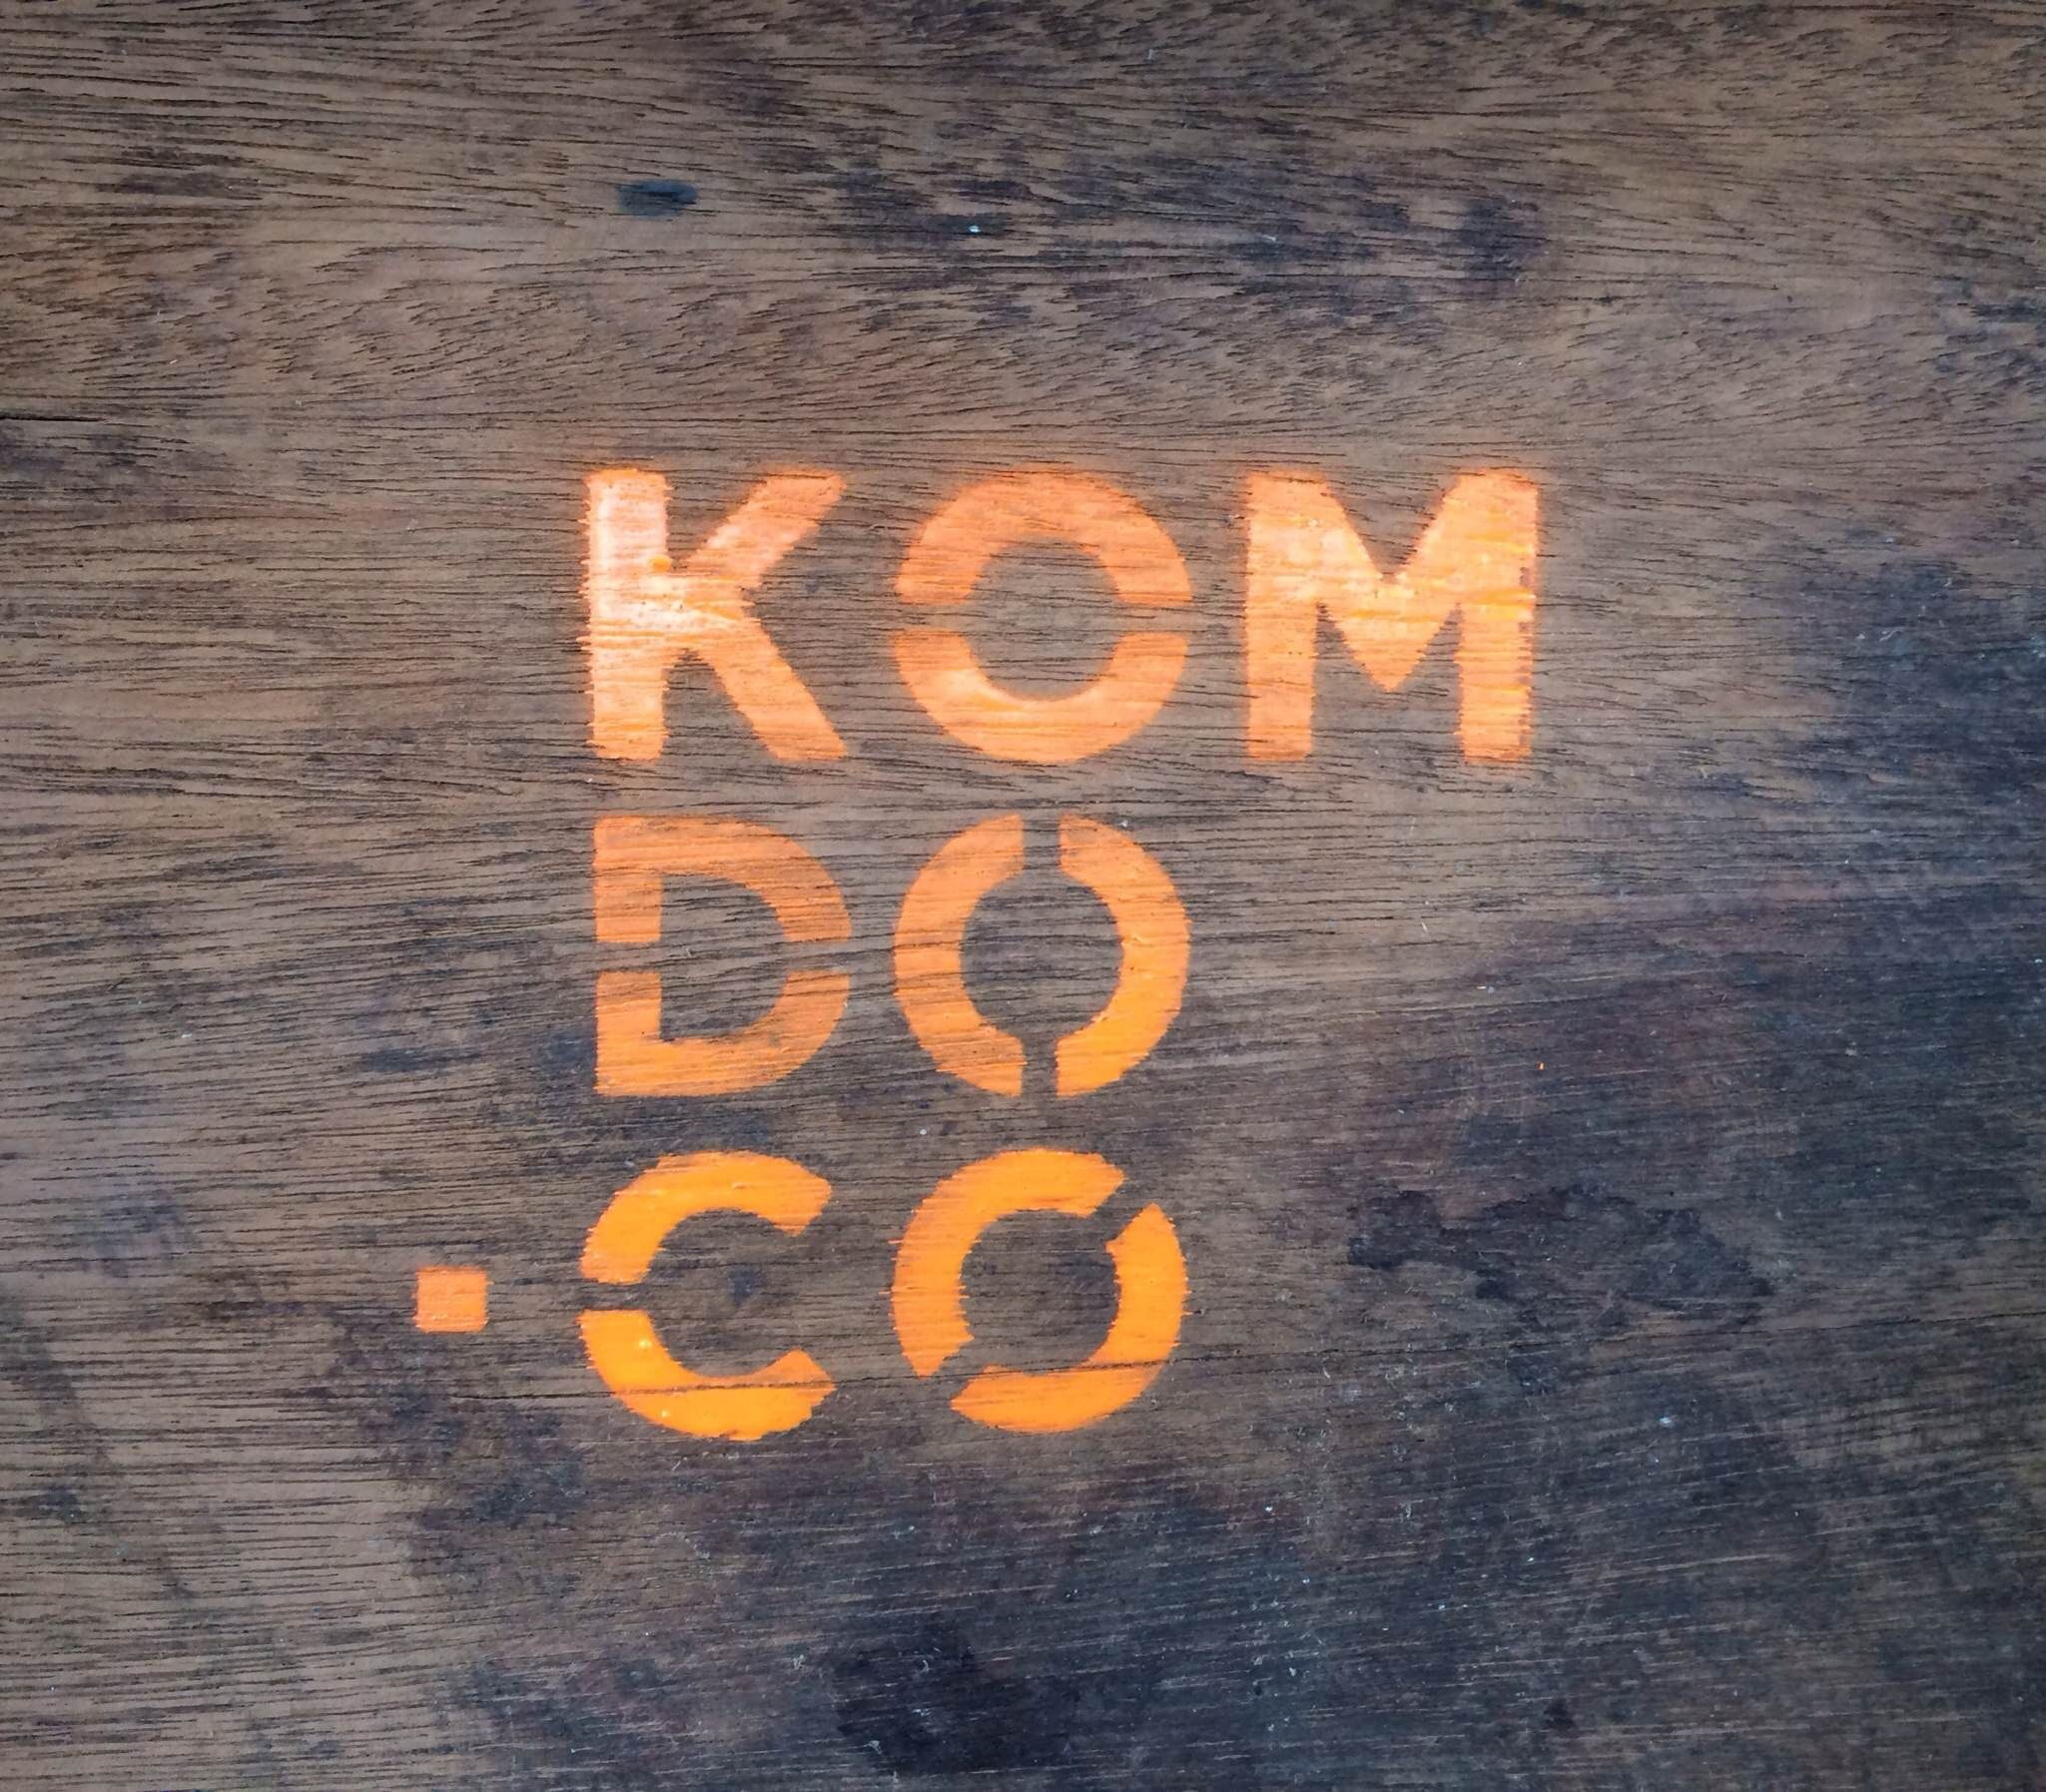 Antique materials and textures by komdo.co